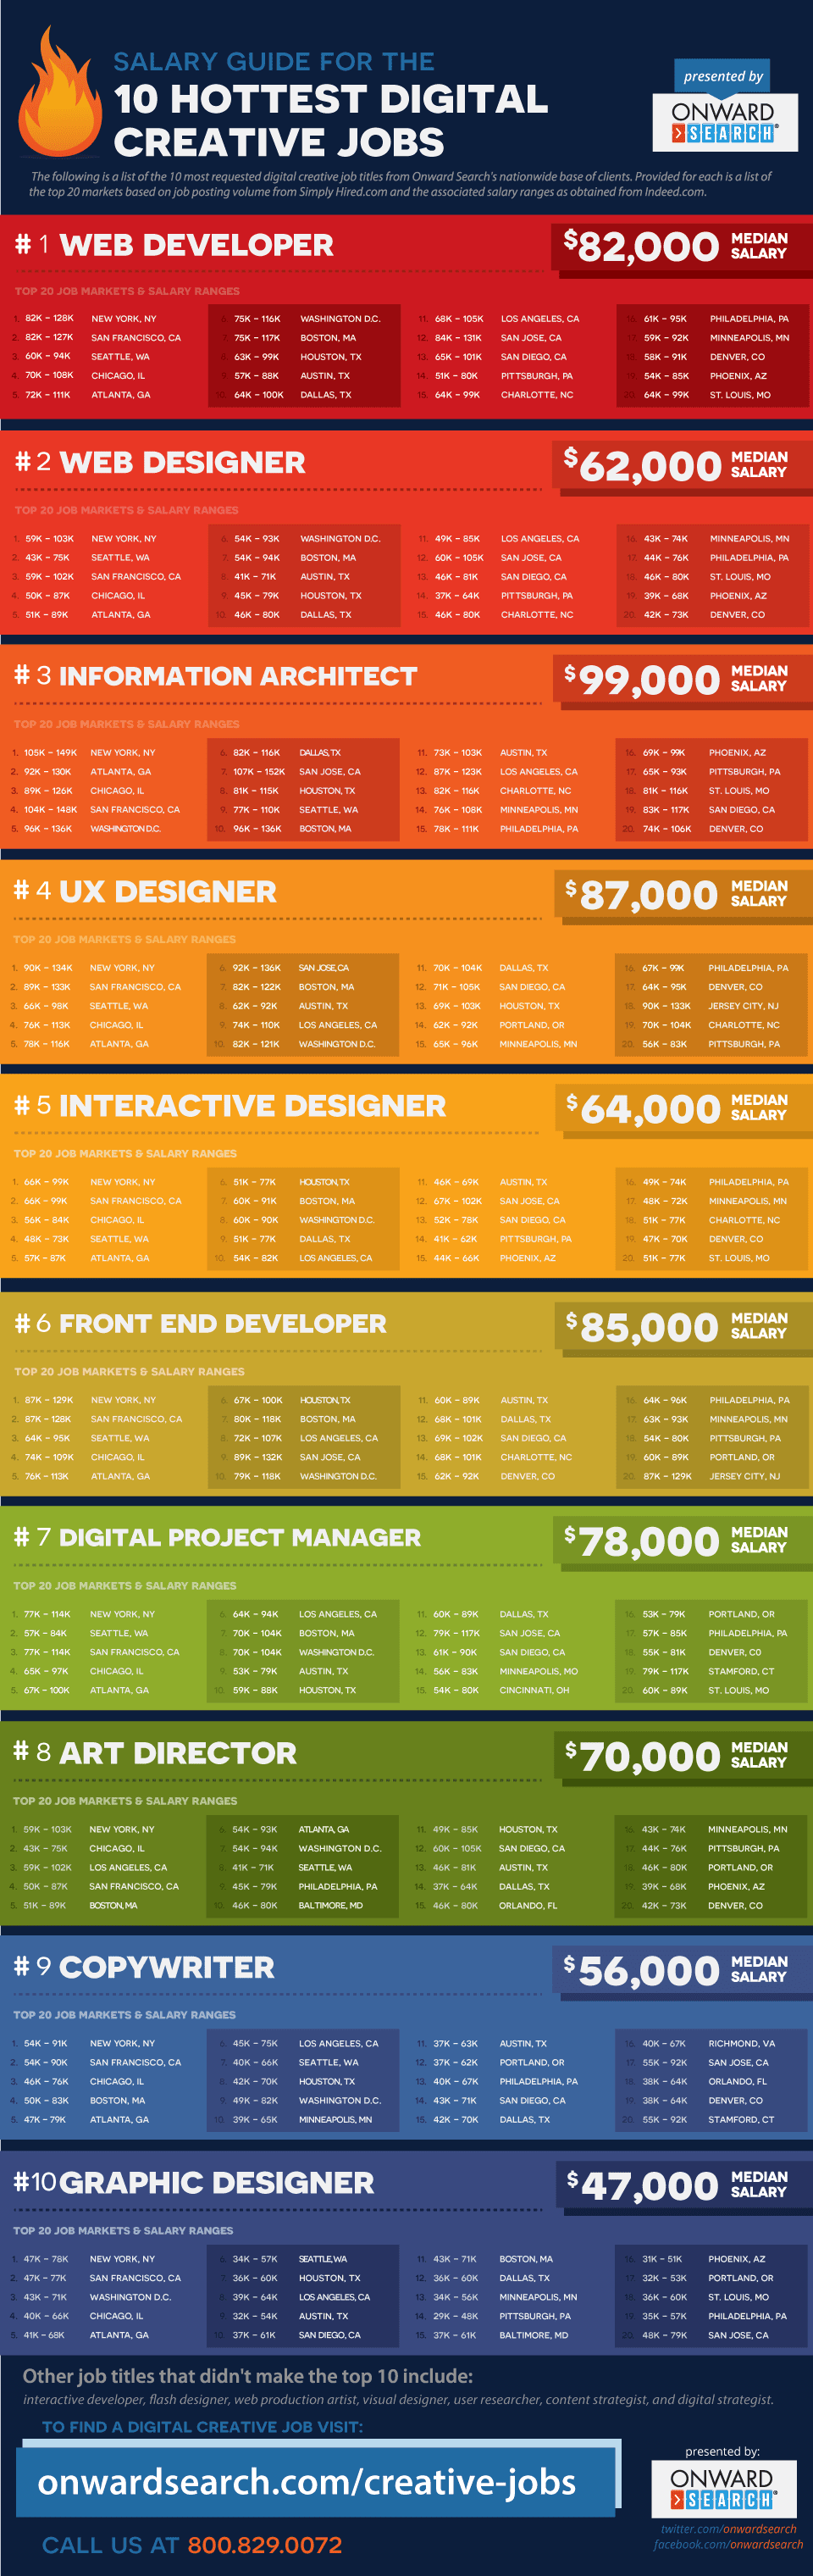 Digital Creative Jobs and Salaries Guide